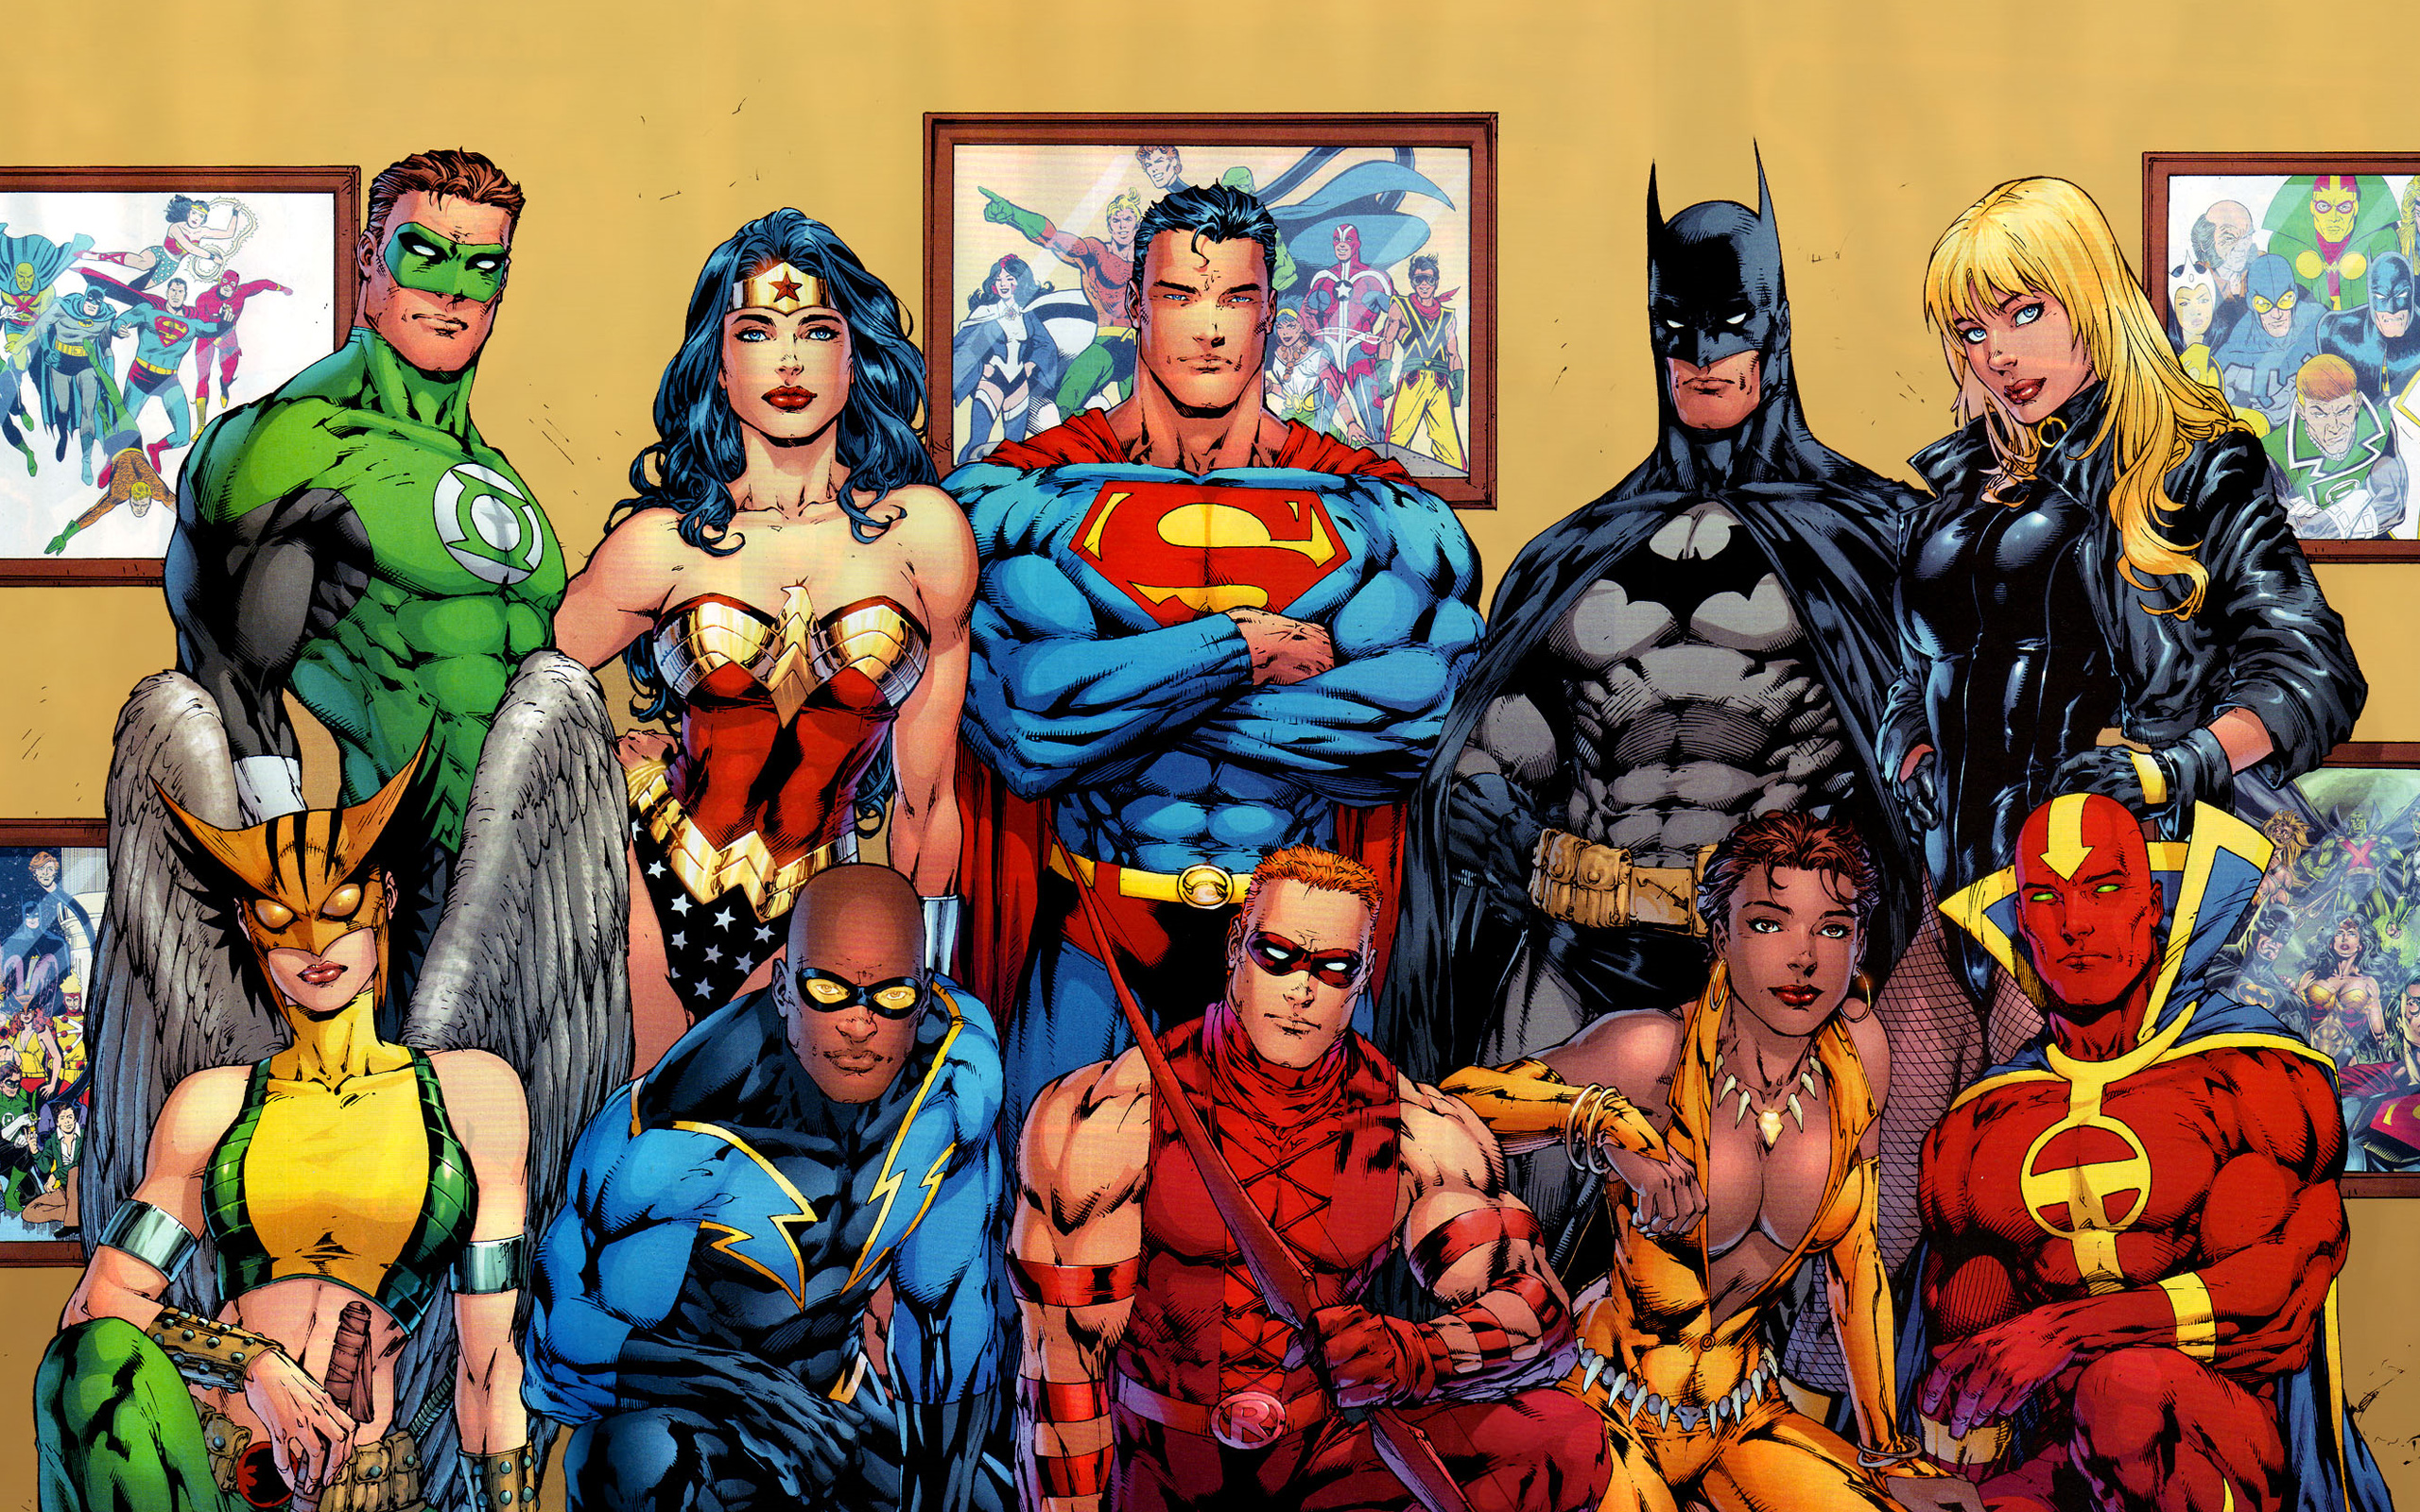 justice league america wallpapers - photo #30